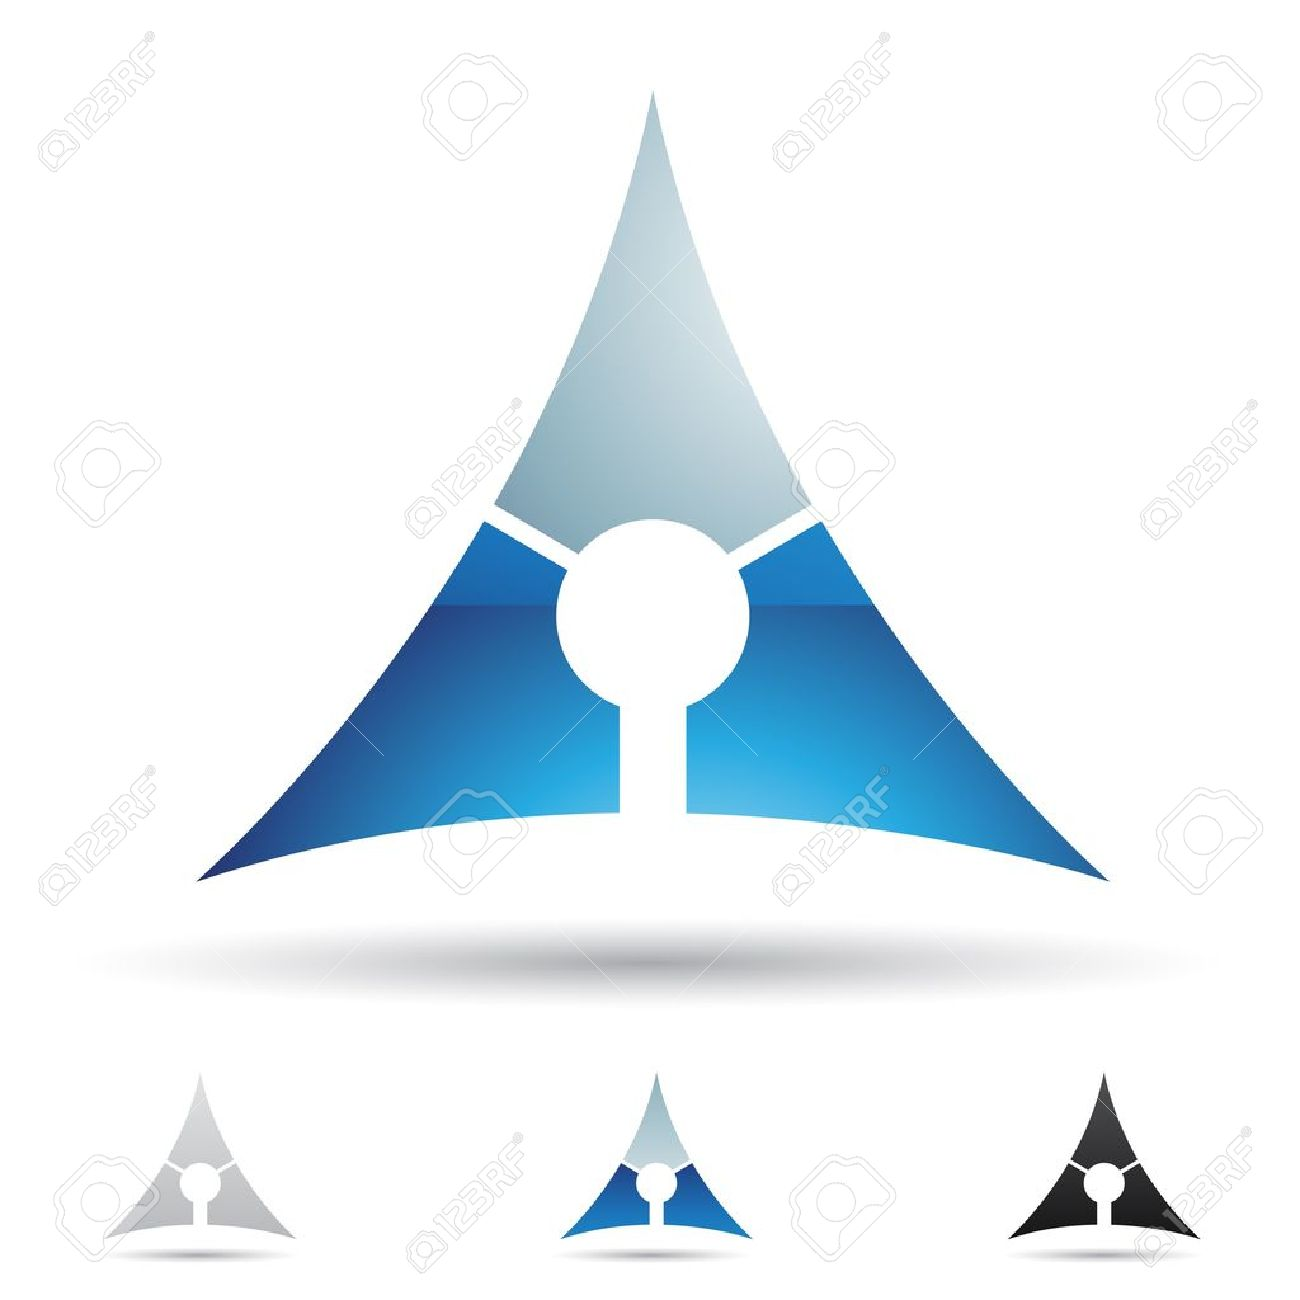 Blue Pyramid Logo Blue Pyramid Abstract Icons